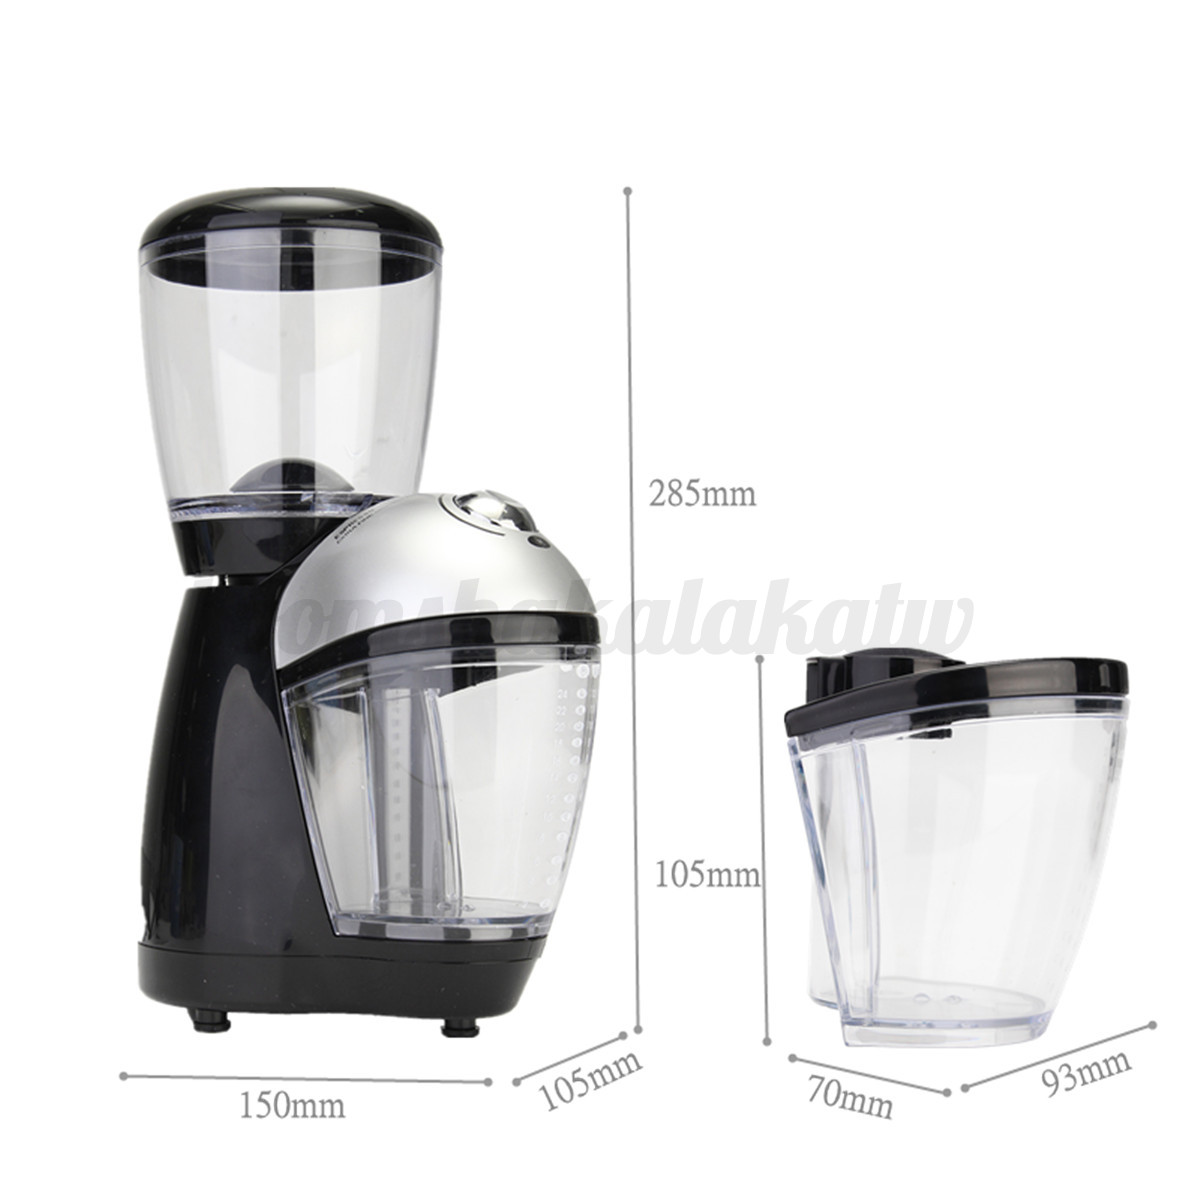 Electric Automatic Coffee Bean Mill Grinder Maker Machine With Cleaning Brush AU eBay